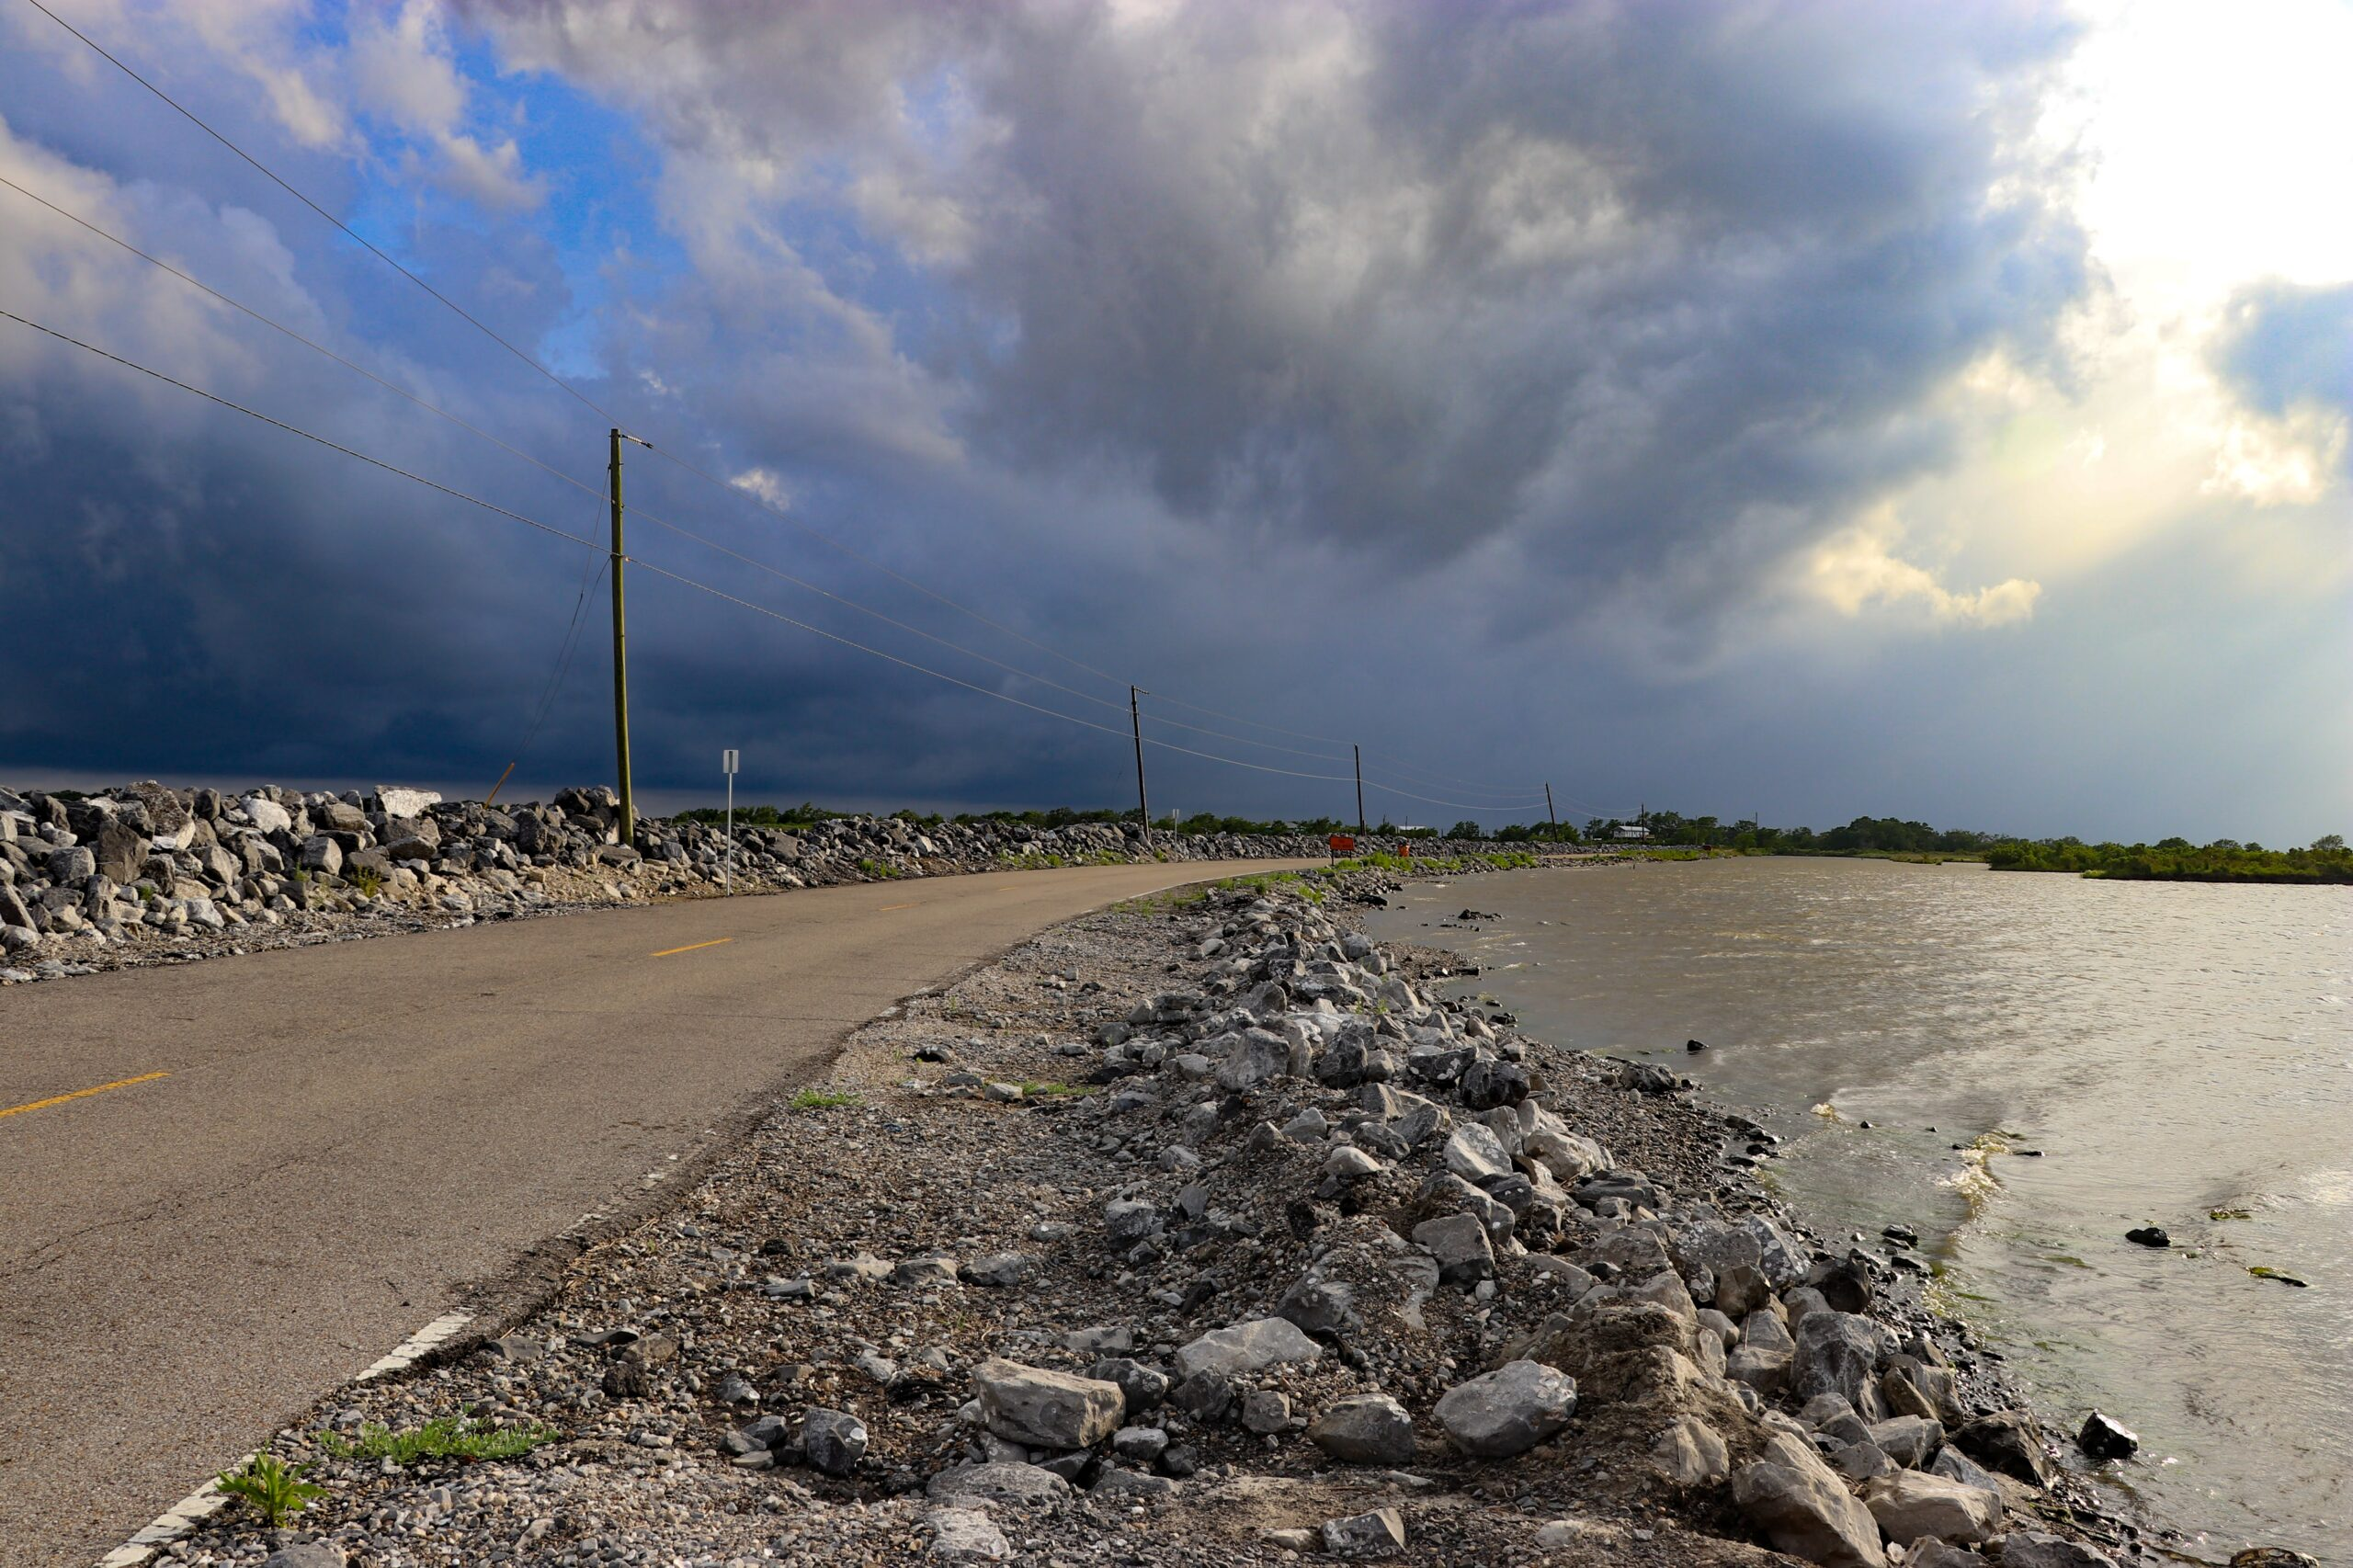 Island Road, the only road to Isle De Jean Charles, is often flooded by encroaching water leaving residents stranded on the island for hours or days at a time. Credit: Katie Livingstone/Inside Climate News